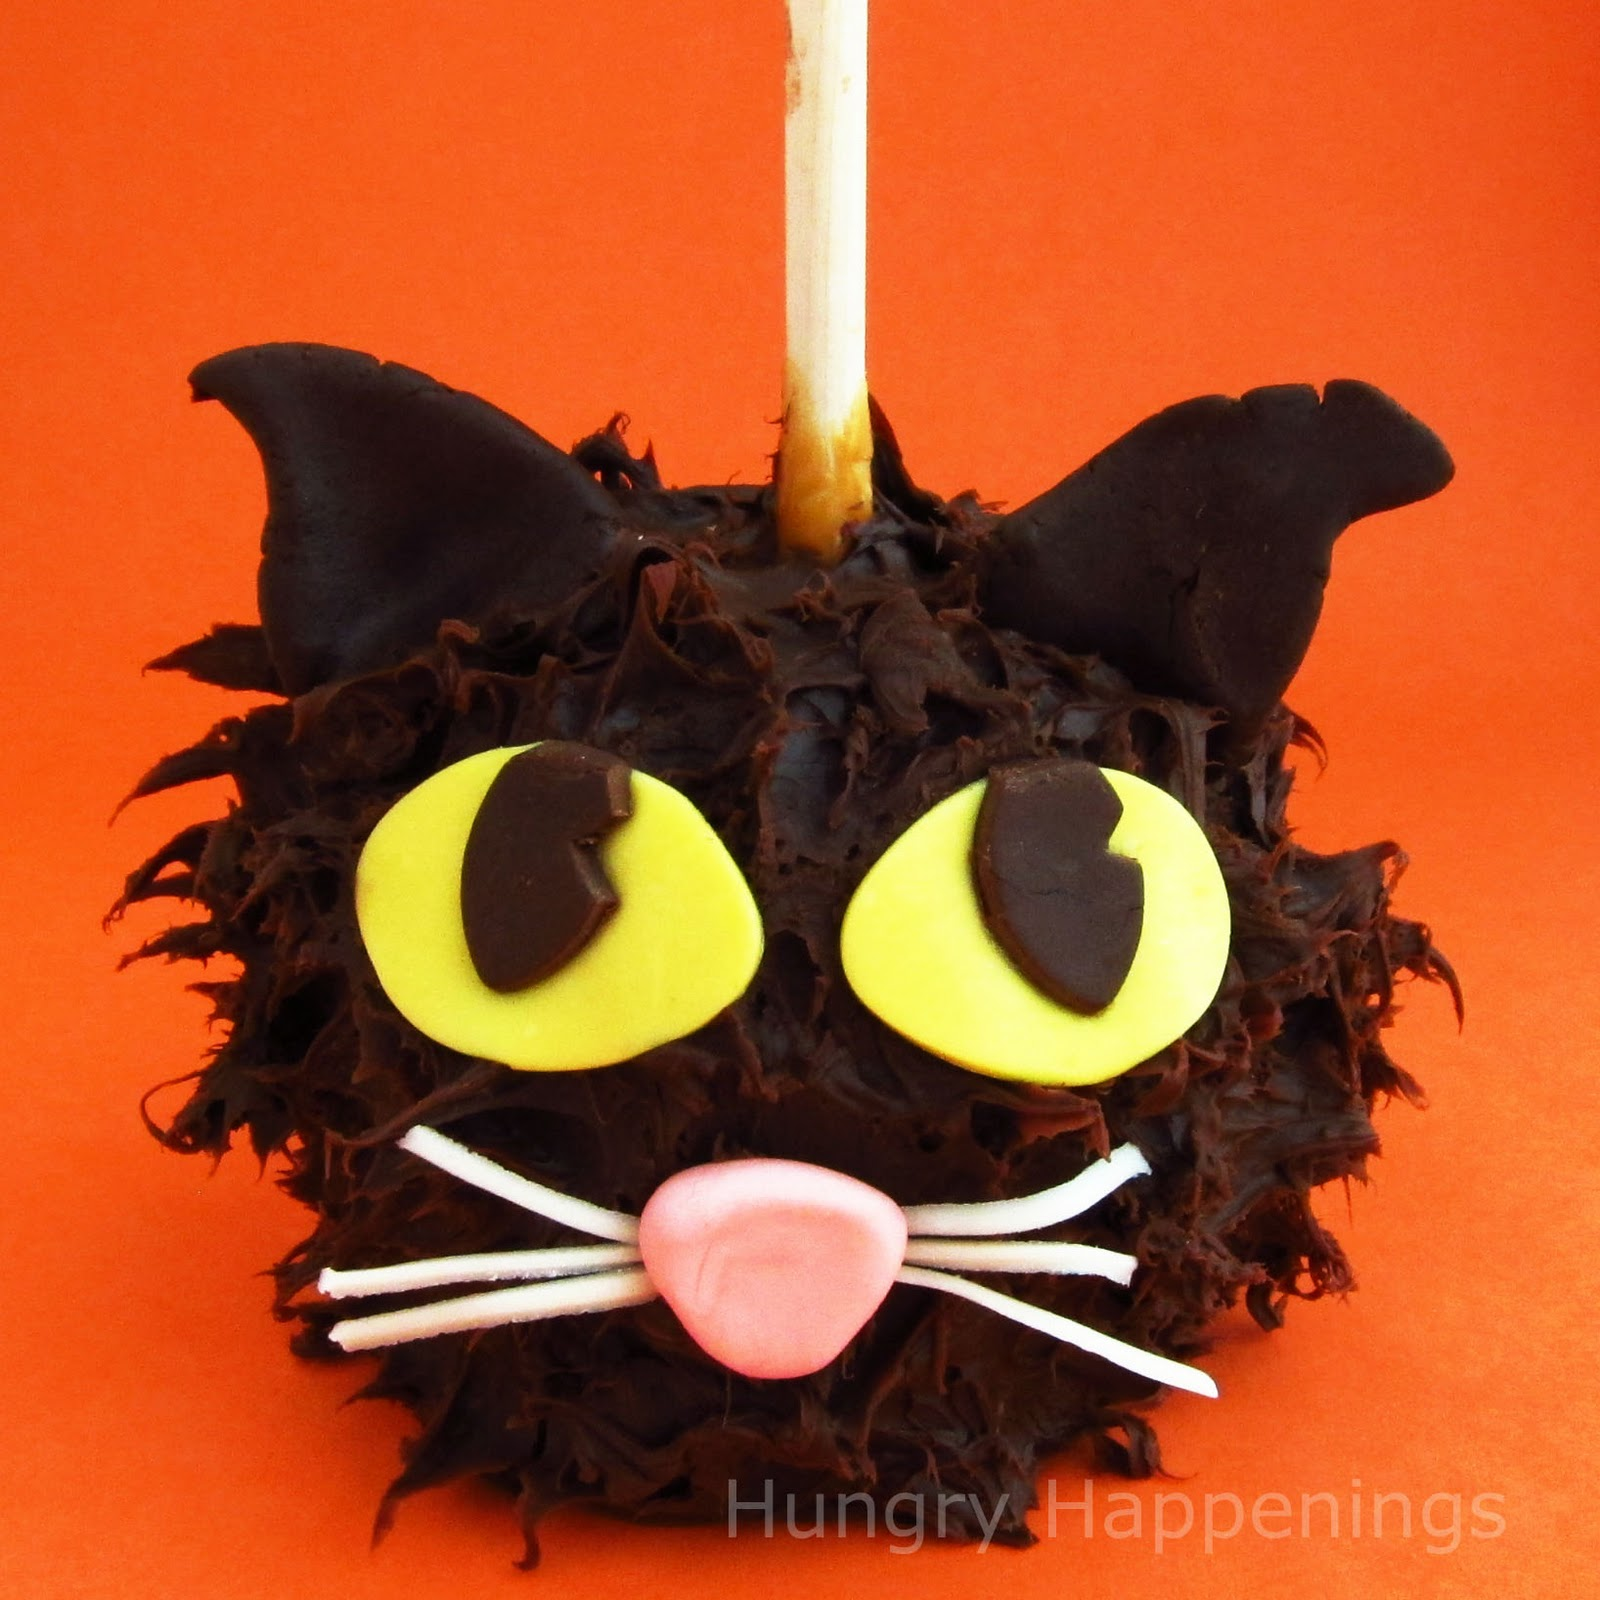 Chocolate Caramel Apple Cats - Hungry Happenings